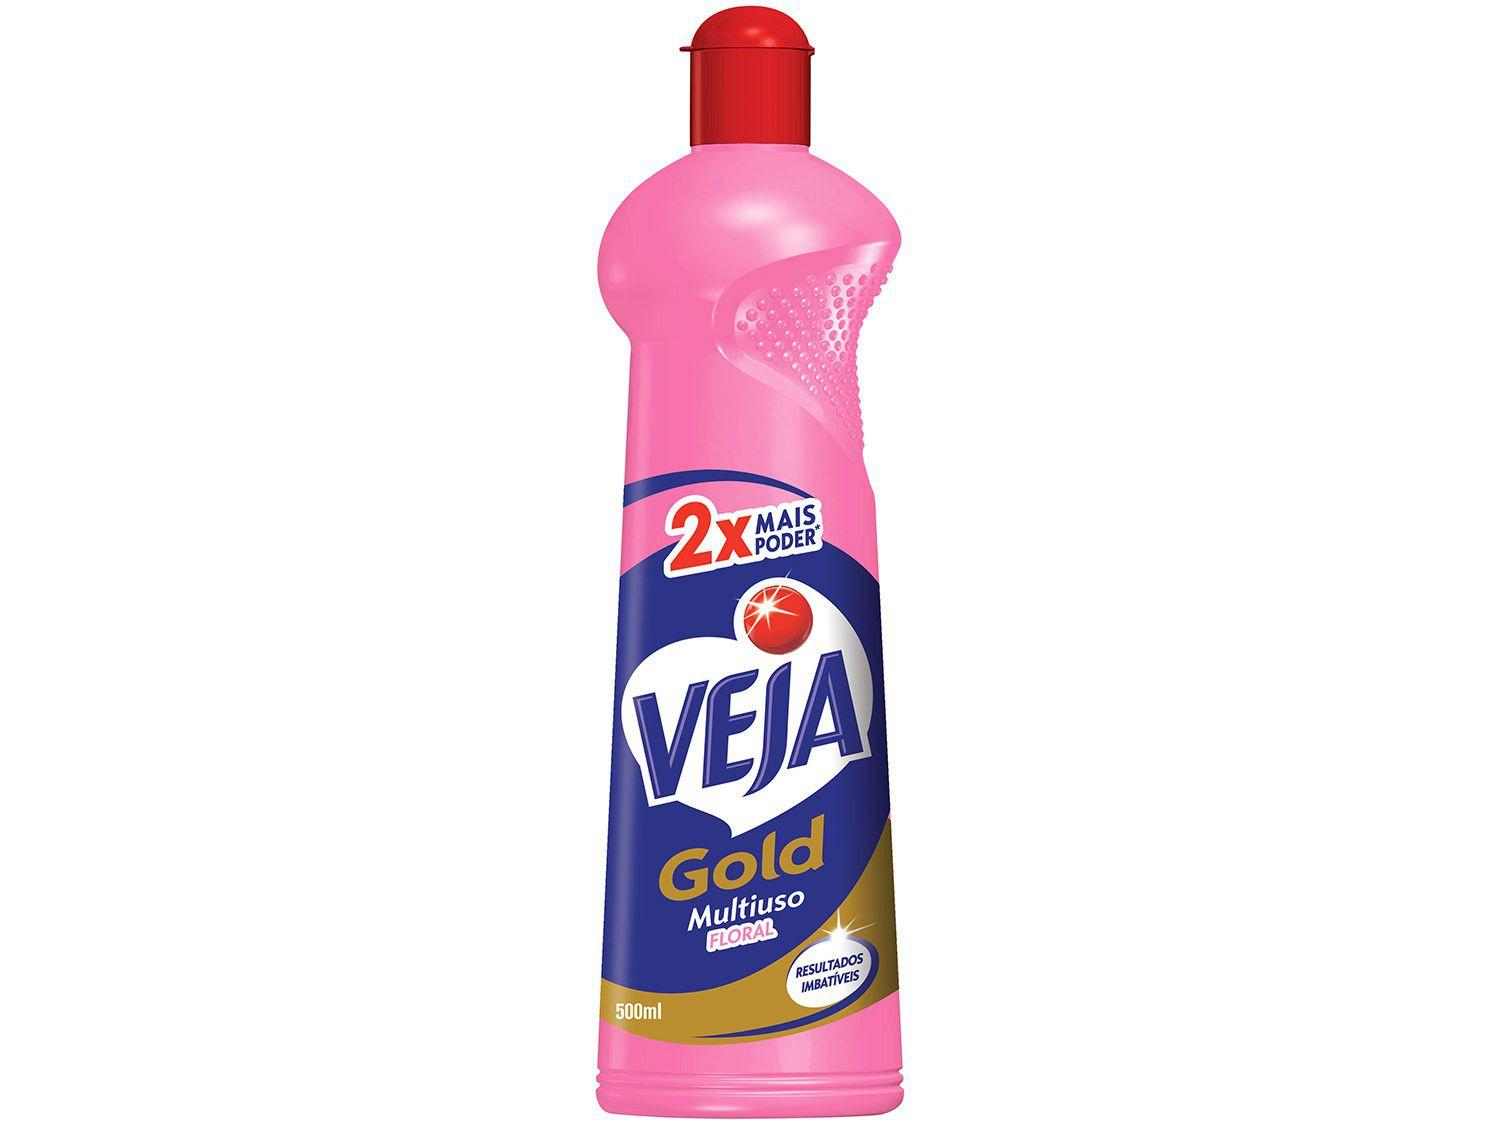 Veja Gold Multiuso Floral Squeeze - 500ml